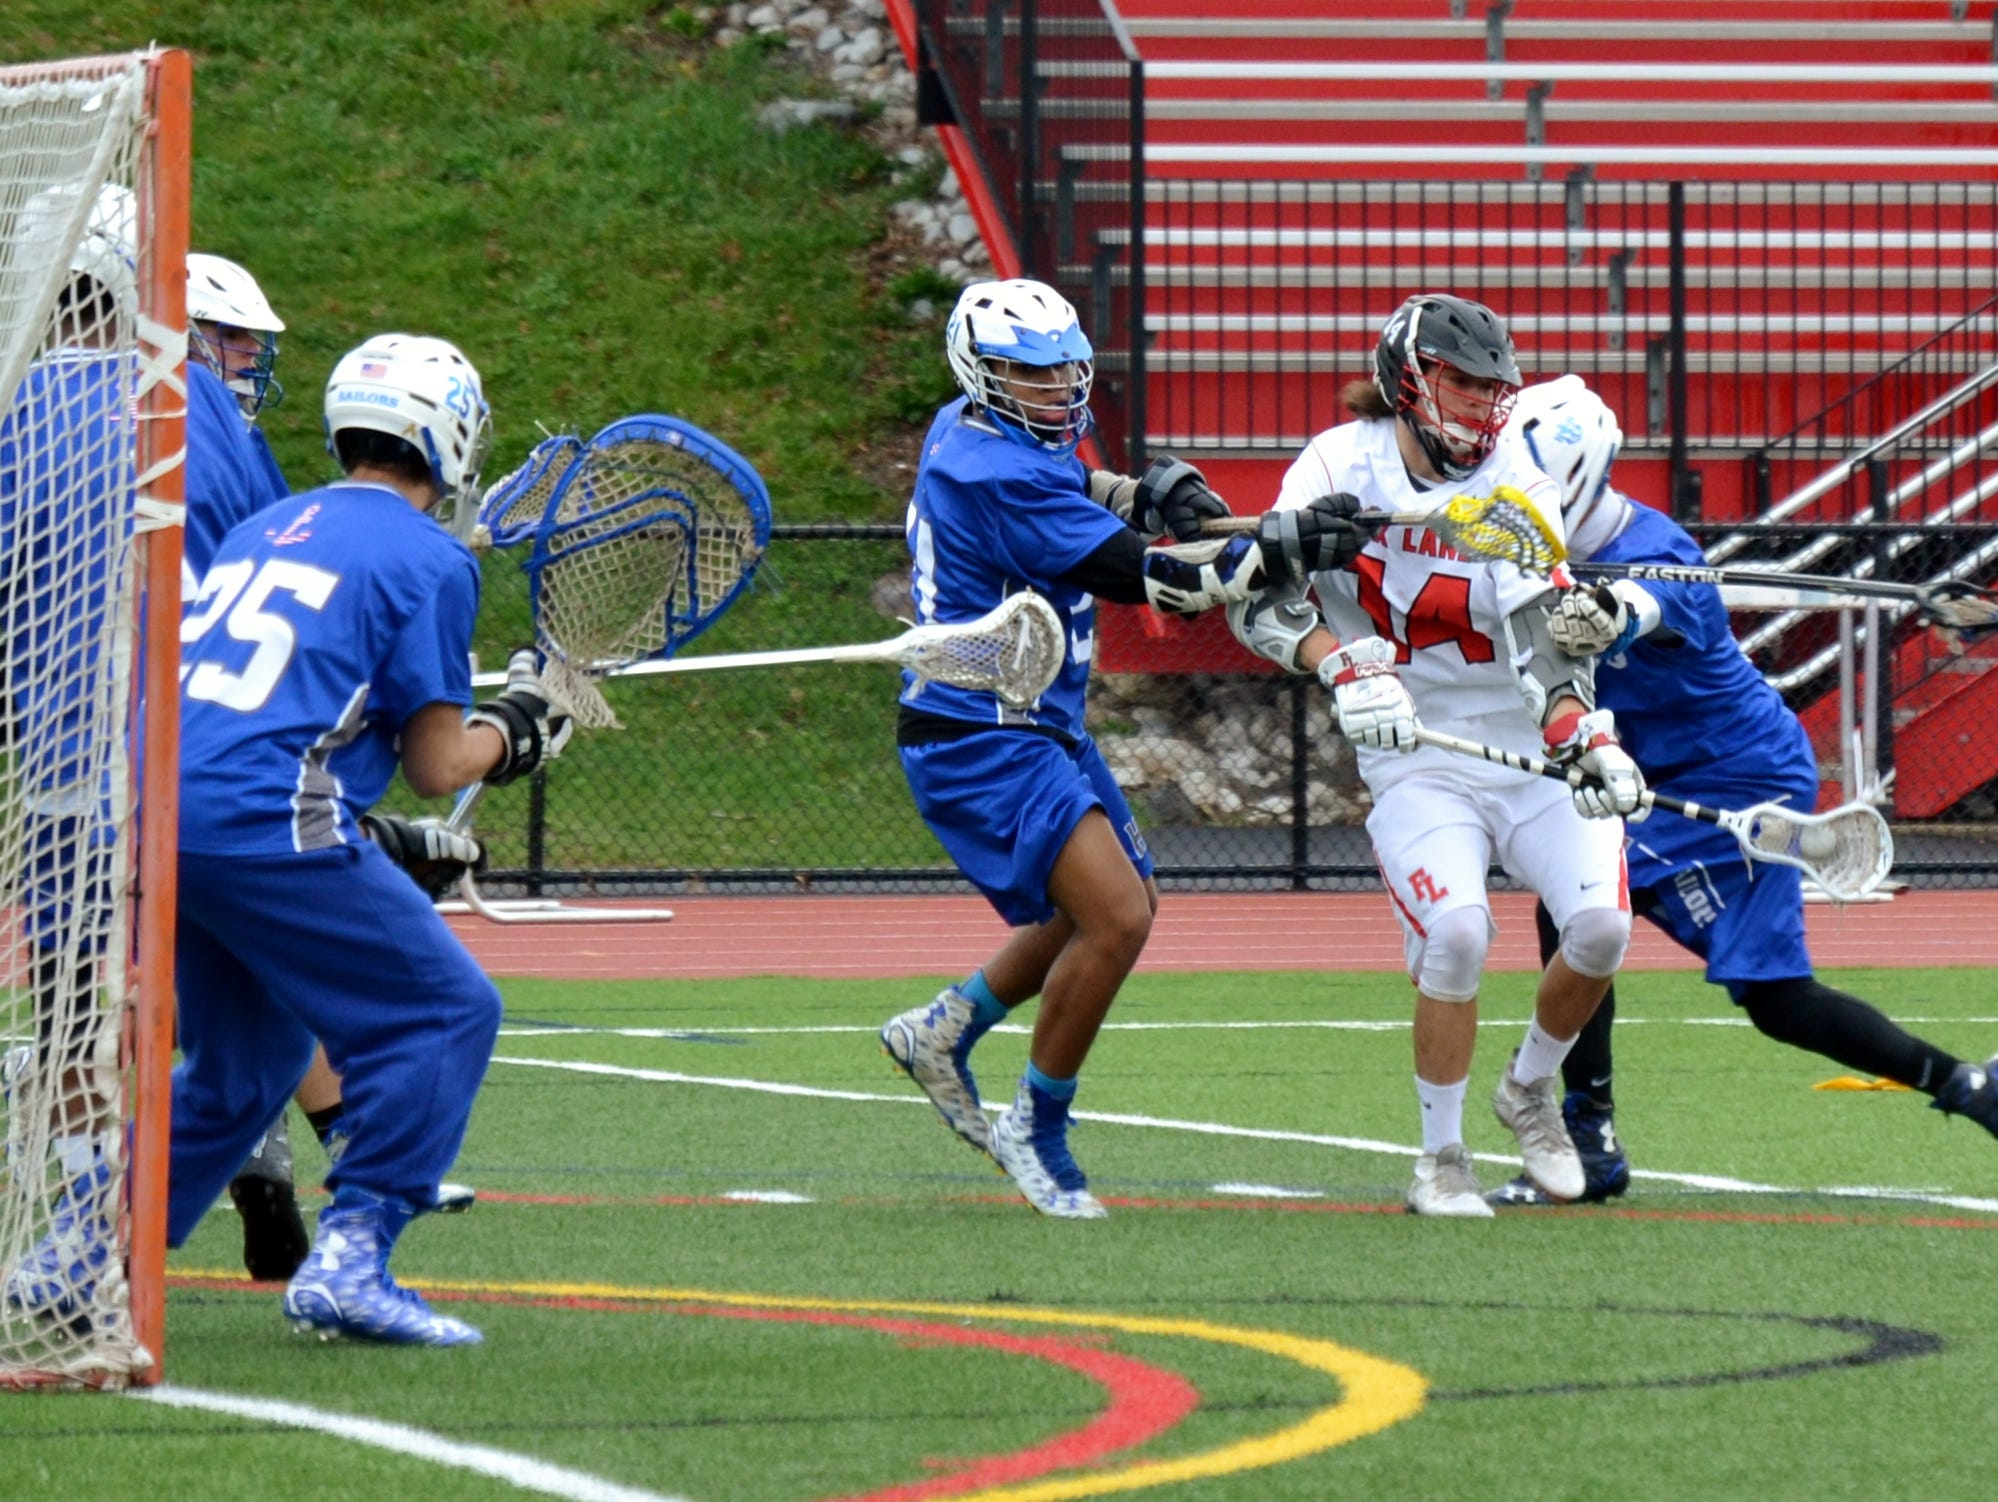 Fox Lane midfielder Thomas Tenney draws a double team Saturday during a 17-7 win over Hen Hud.